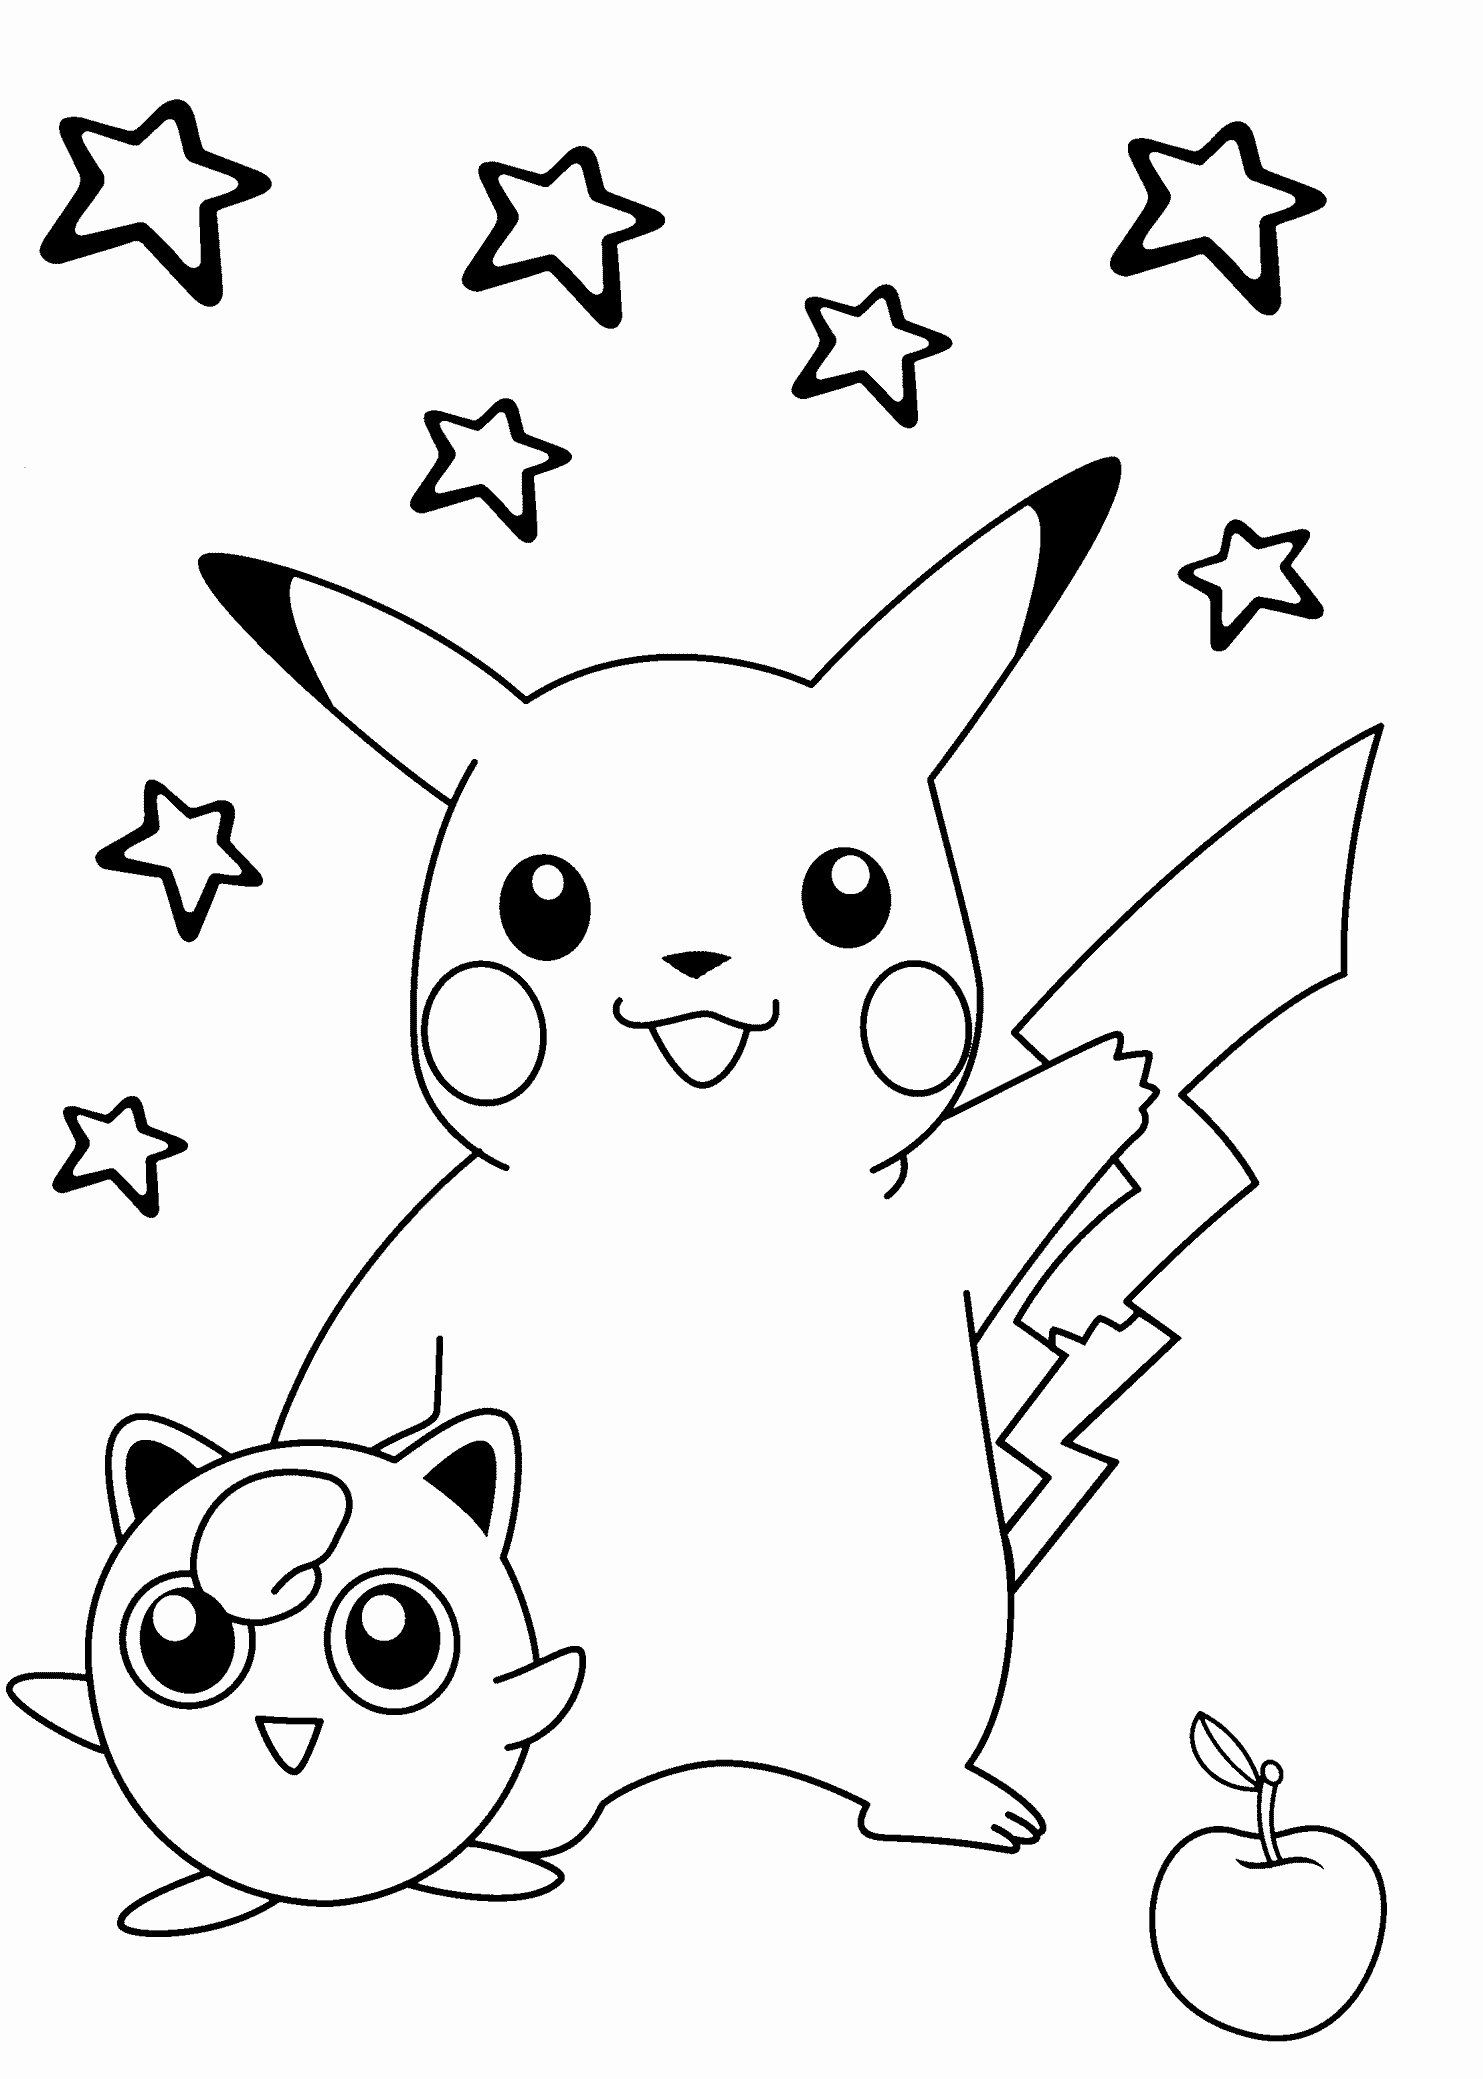 Pokemon Logo Coloring Pages Unique Sleeping Pikachu Coloring Pages